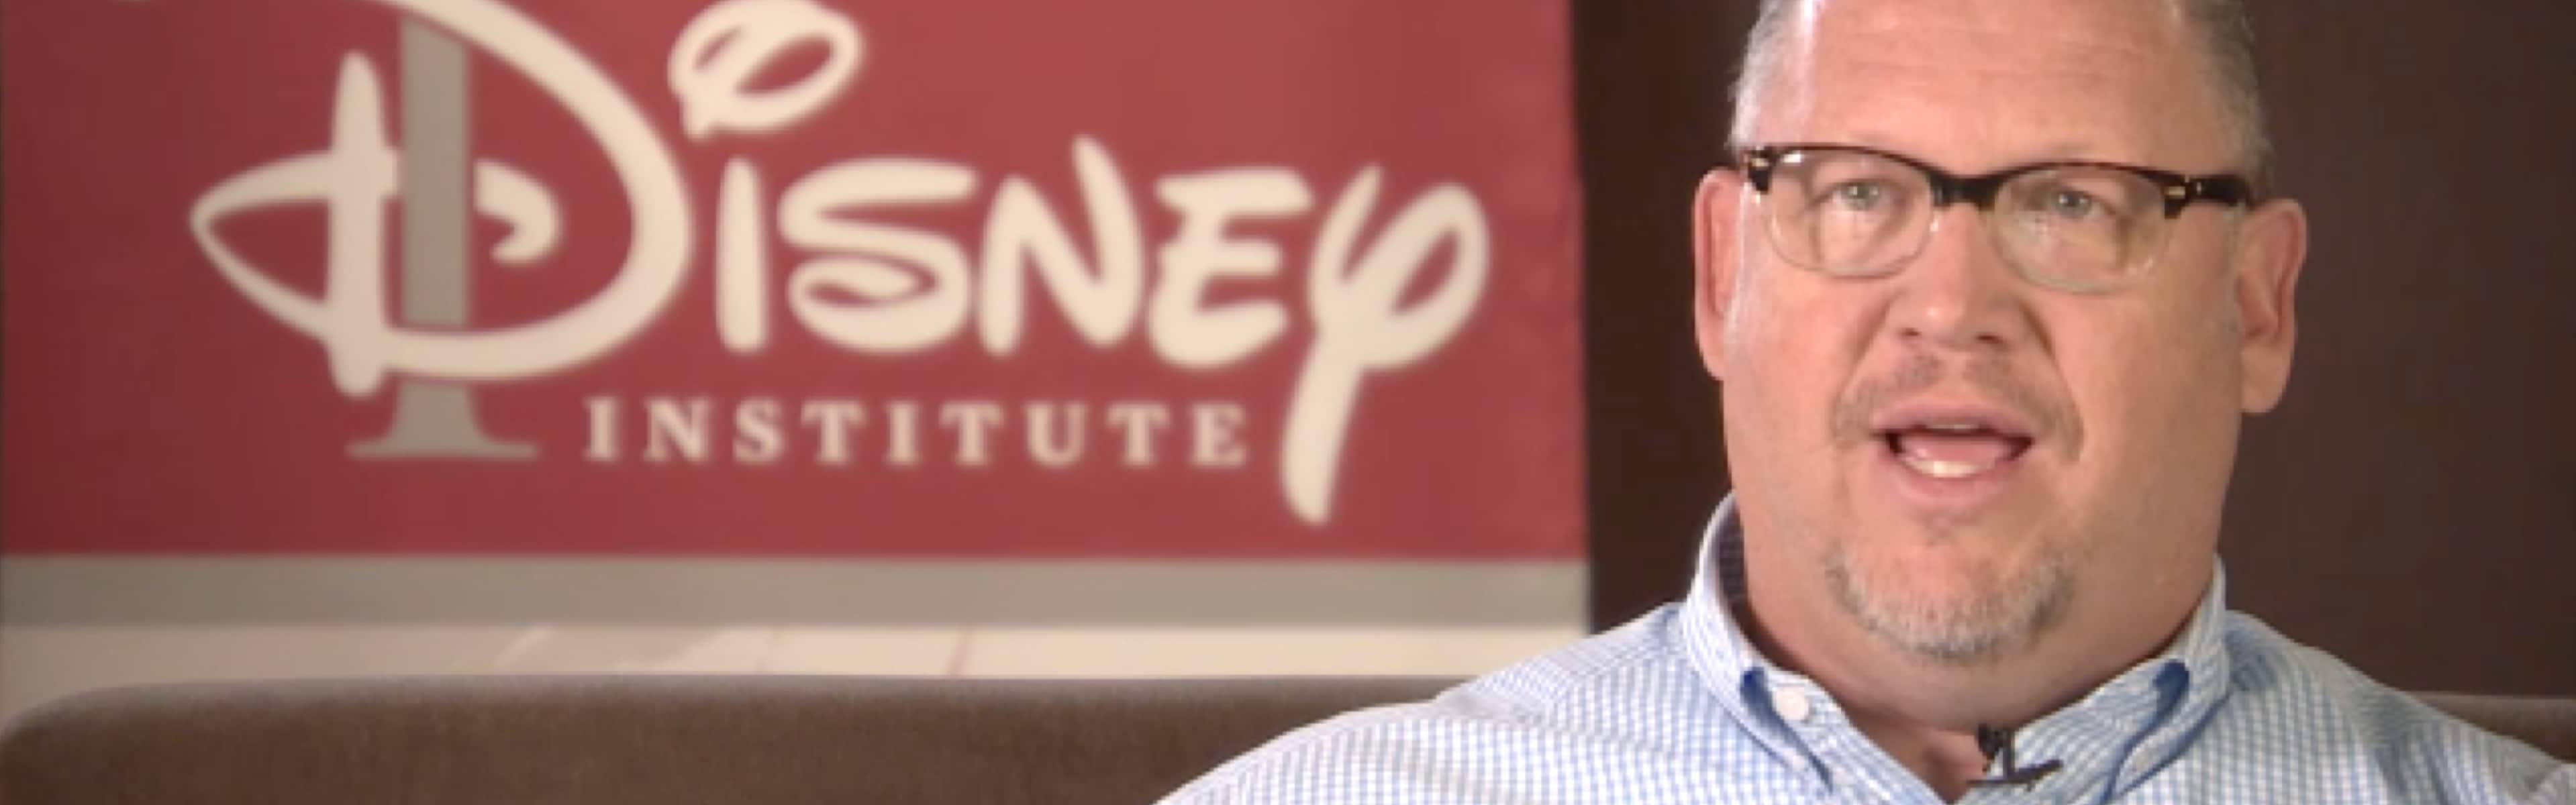 A talking man seated on a couch in front of the Disney Institute sign